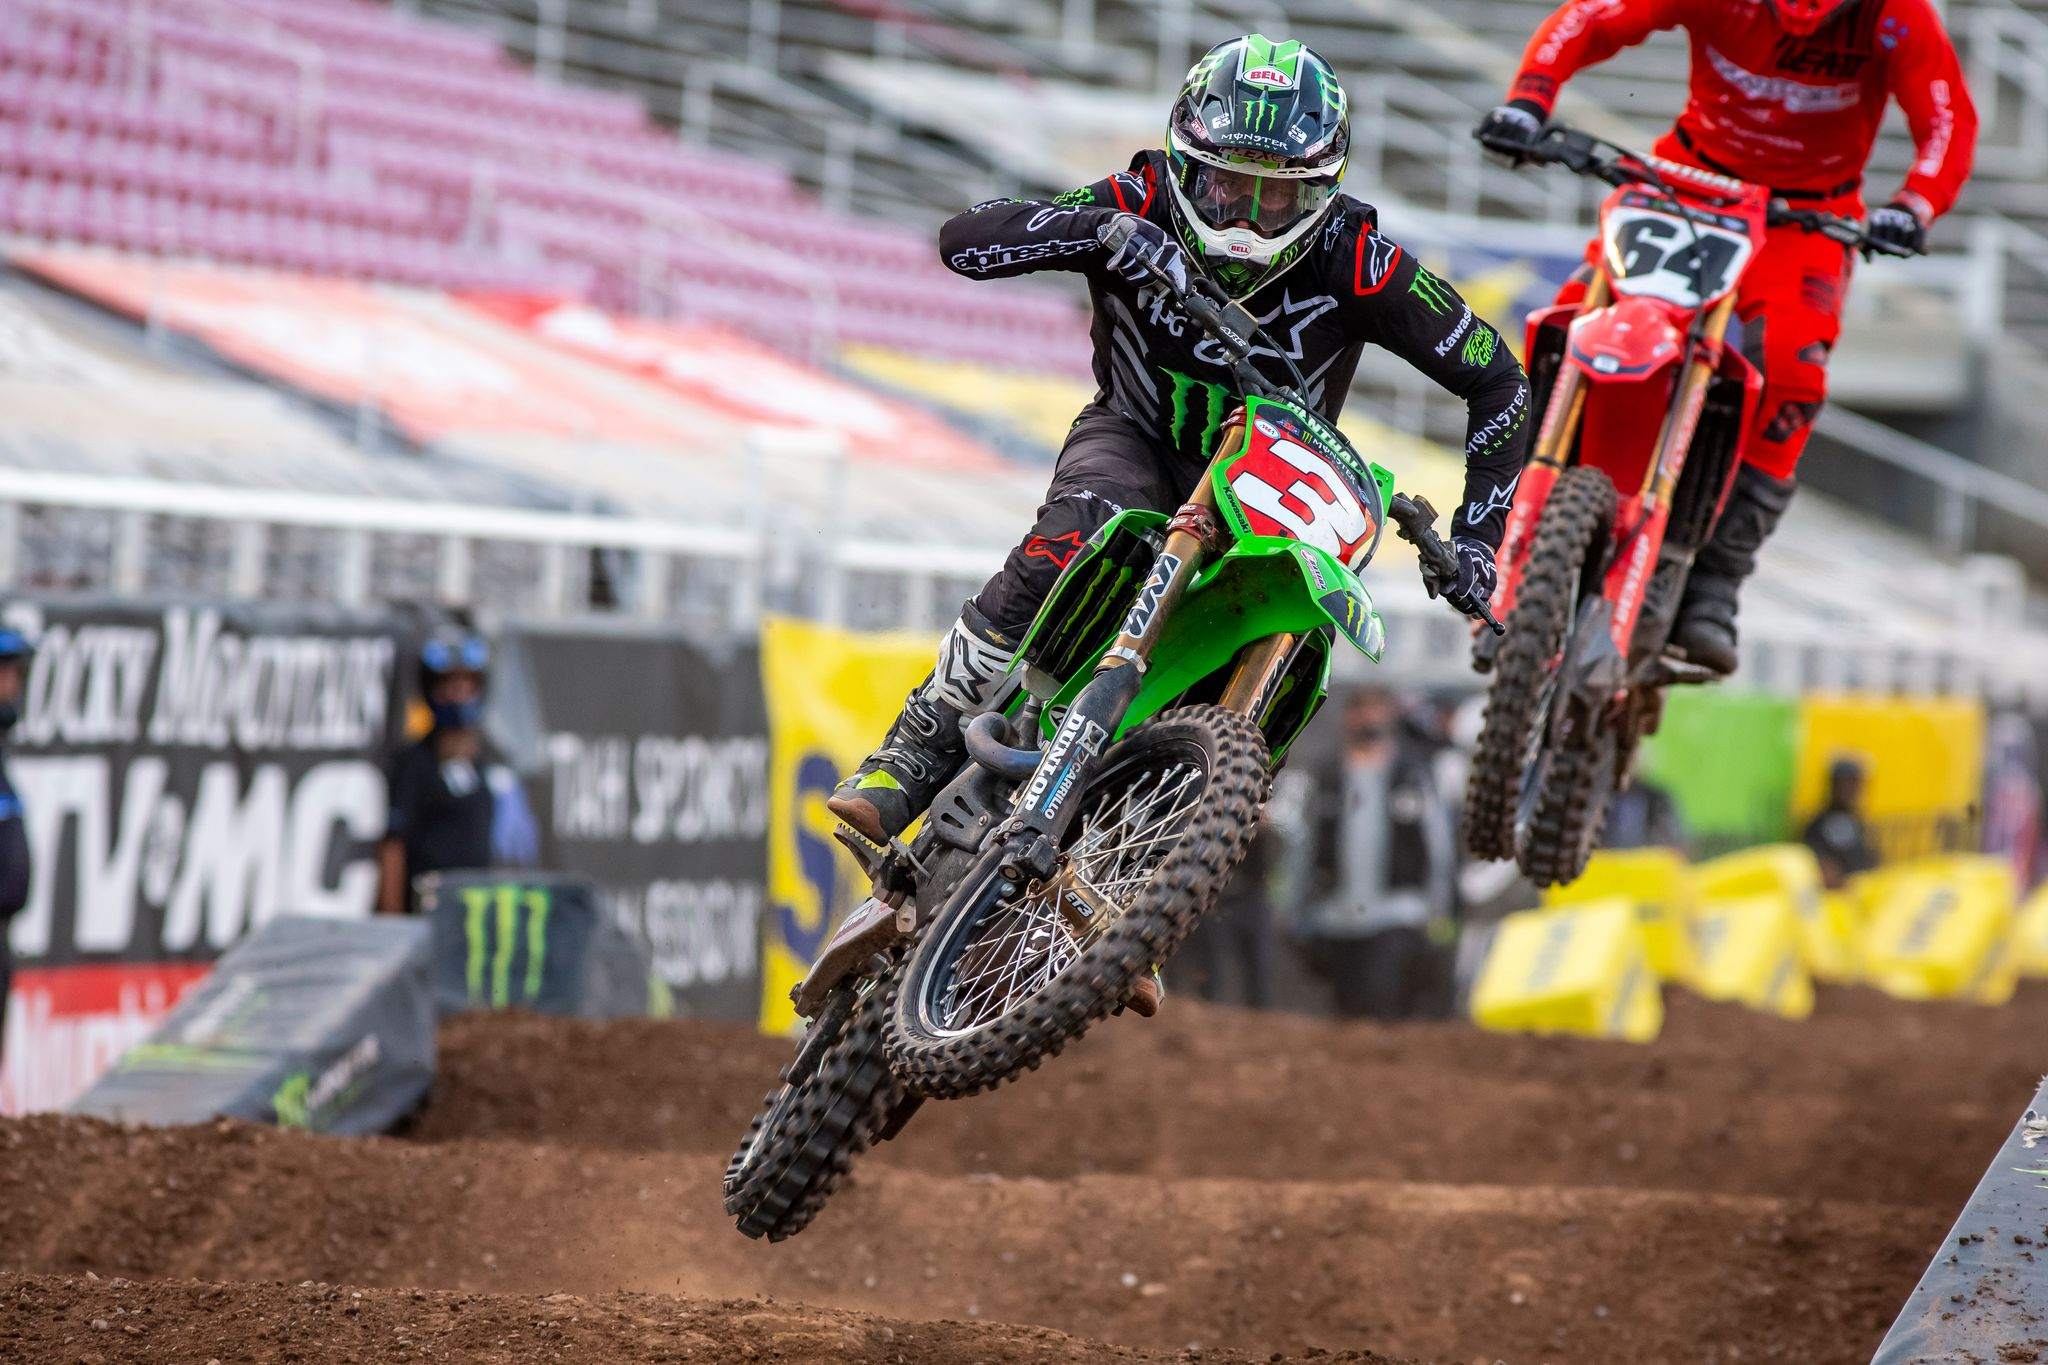 Supercross riders over jump section action